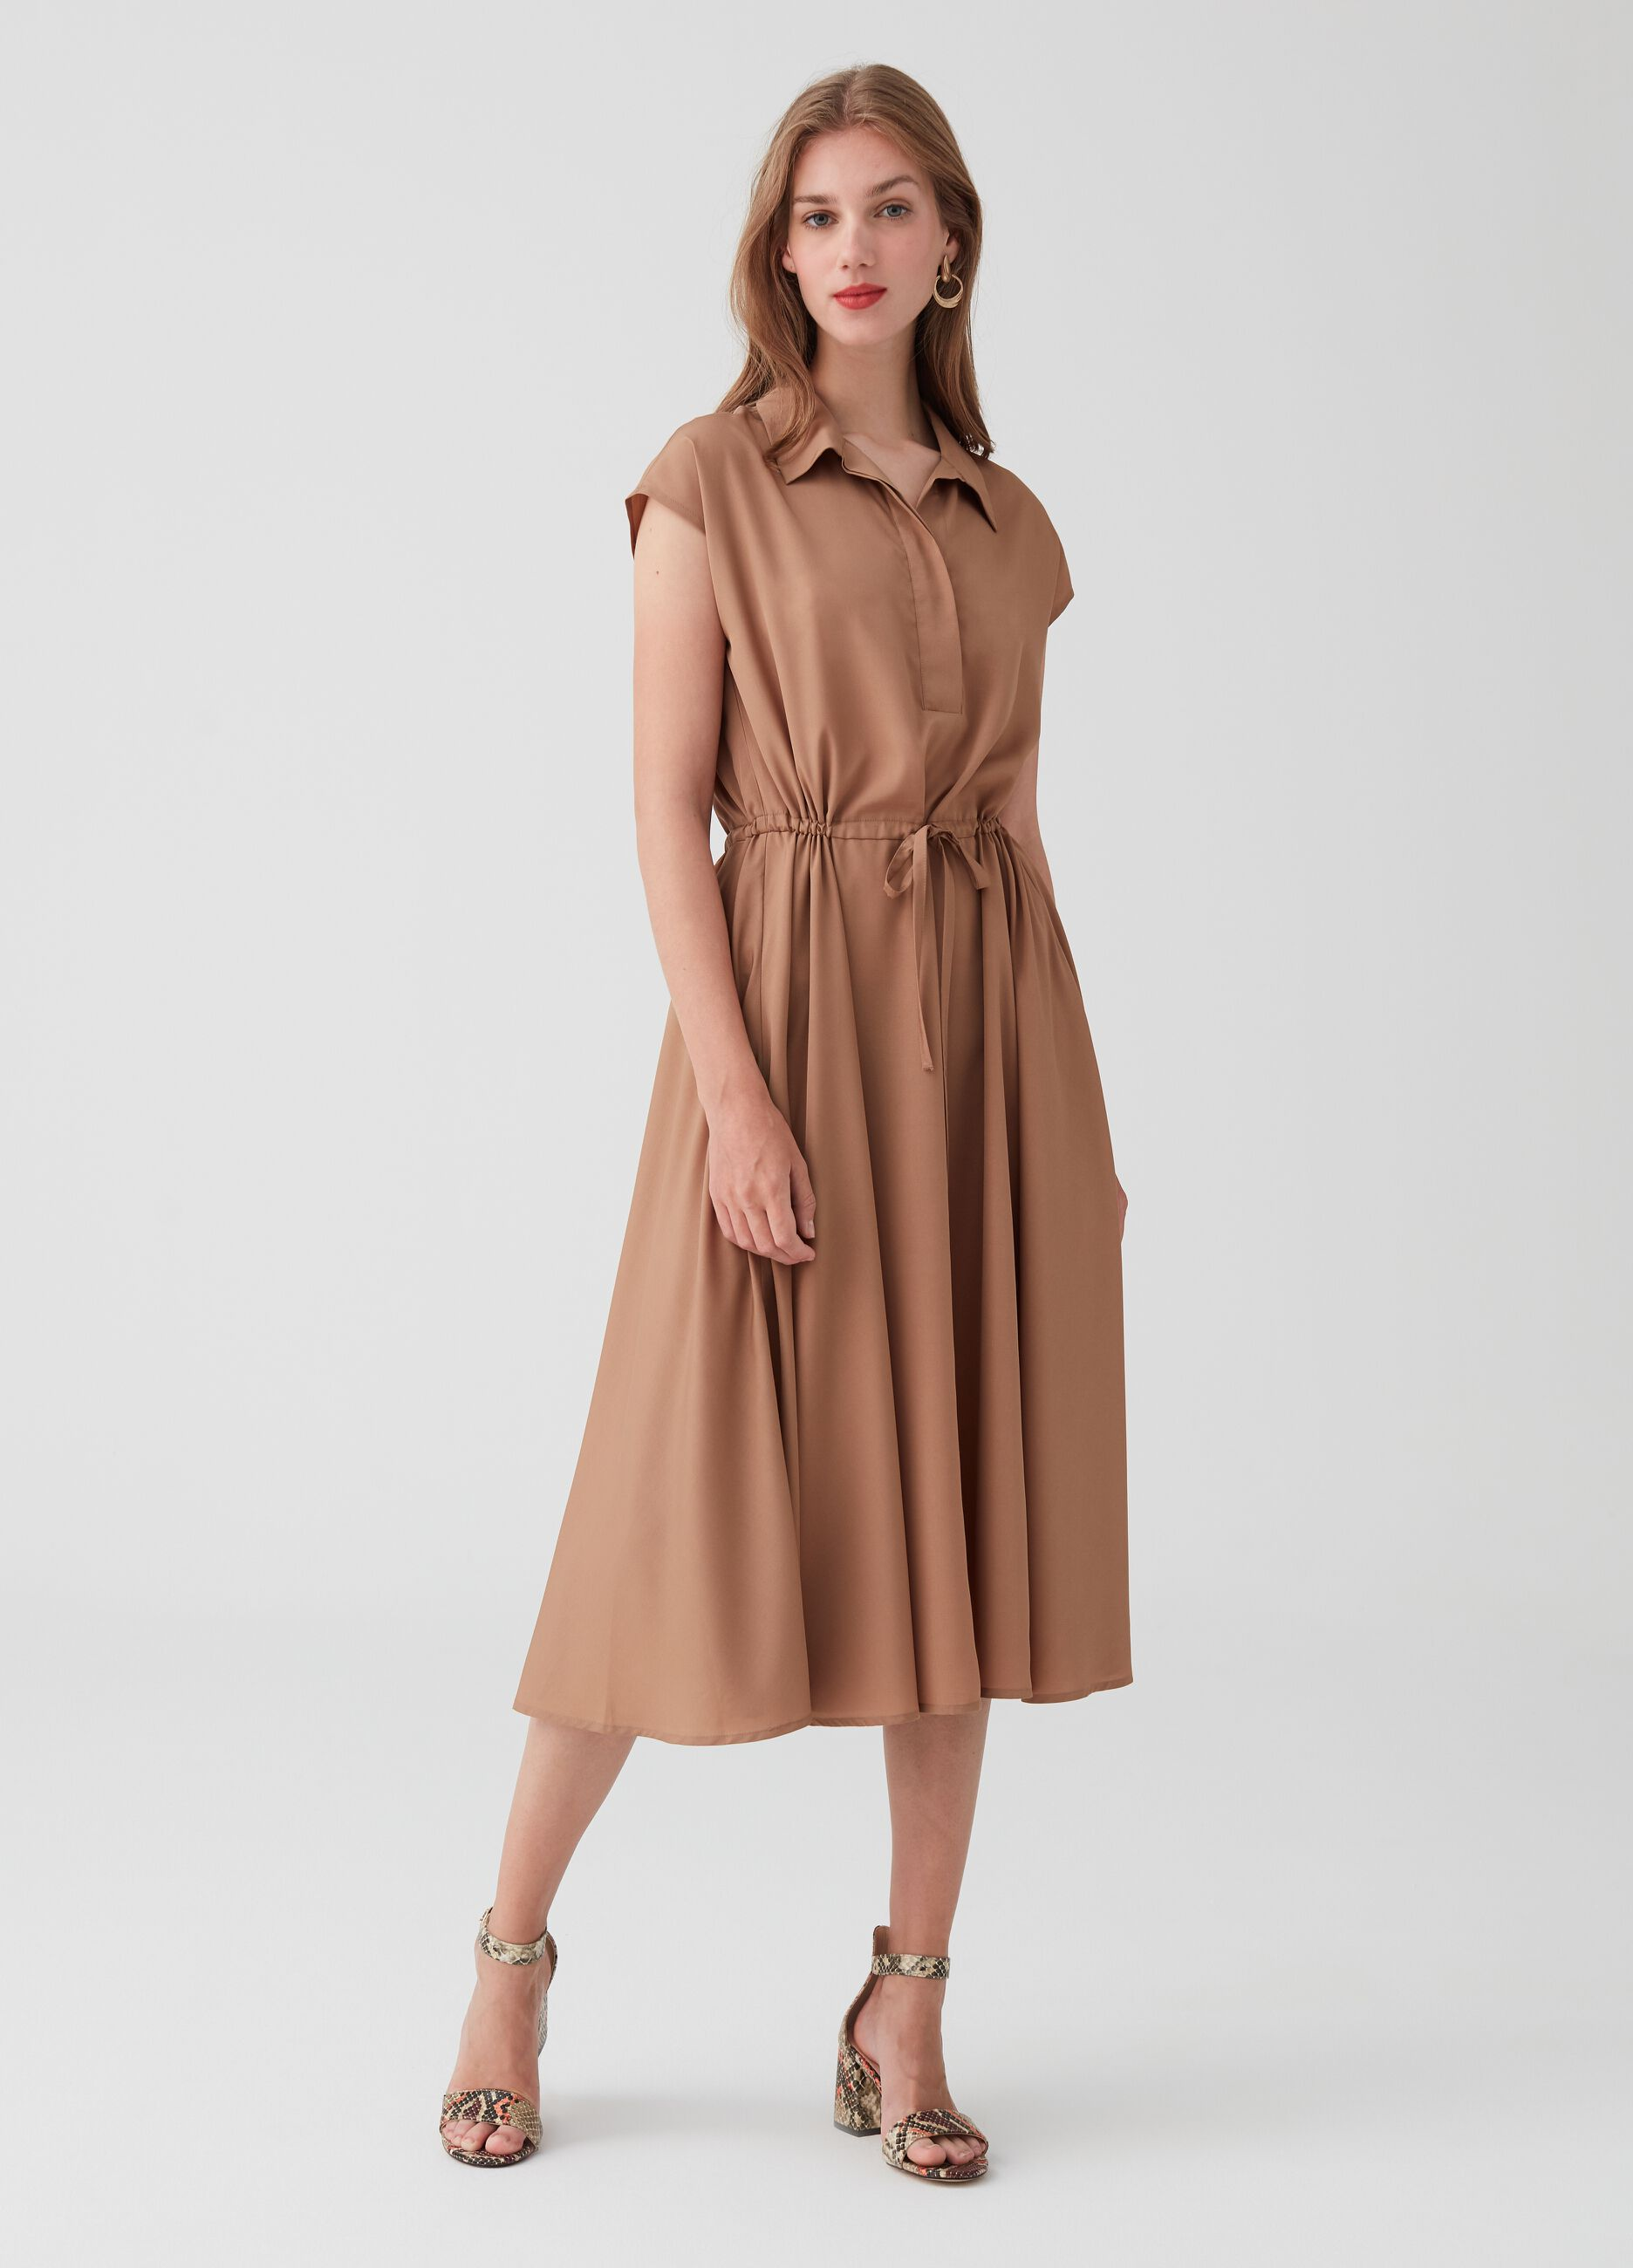 Spring And Suites Summer Dresses Women's Online 2019Ovs 29WEHID